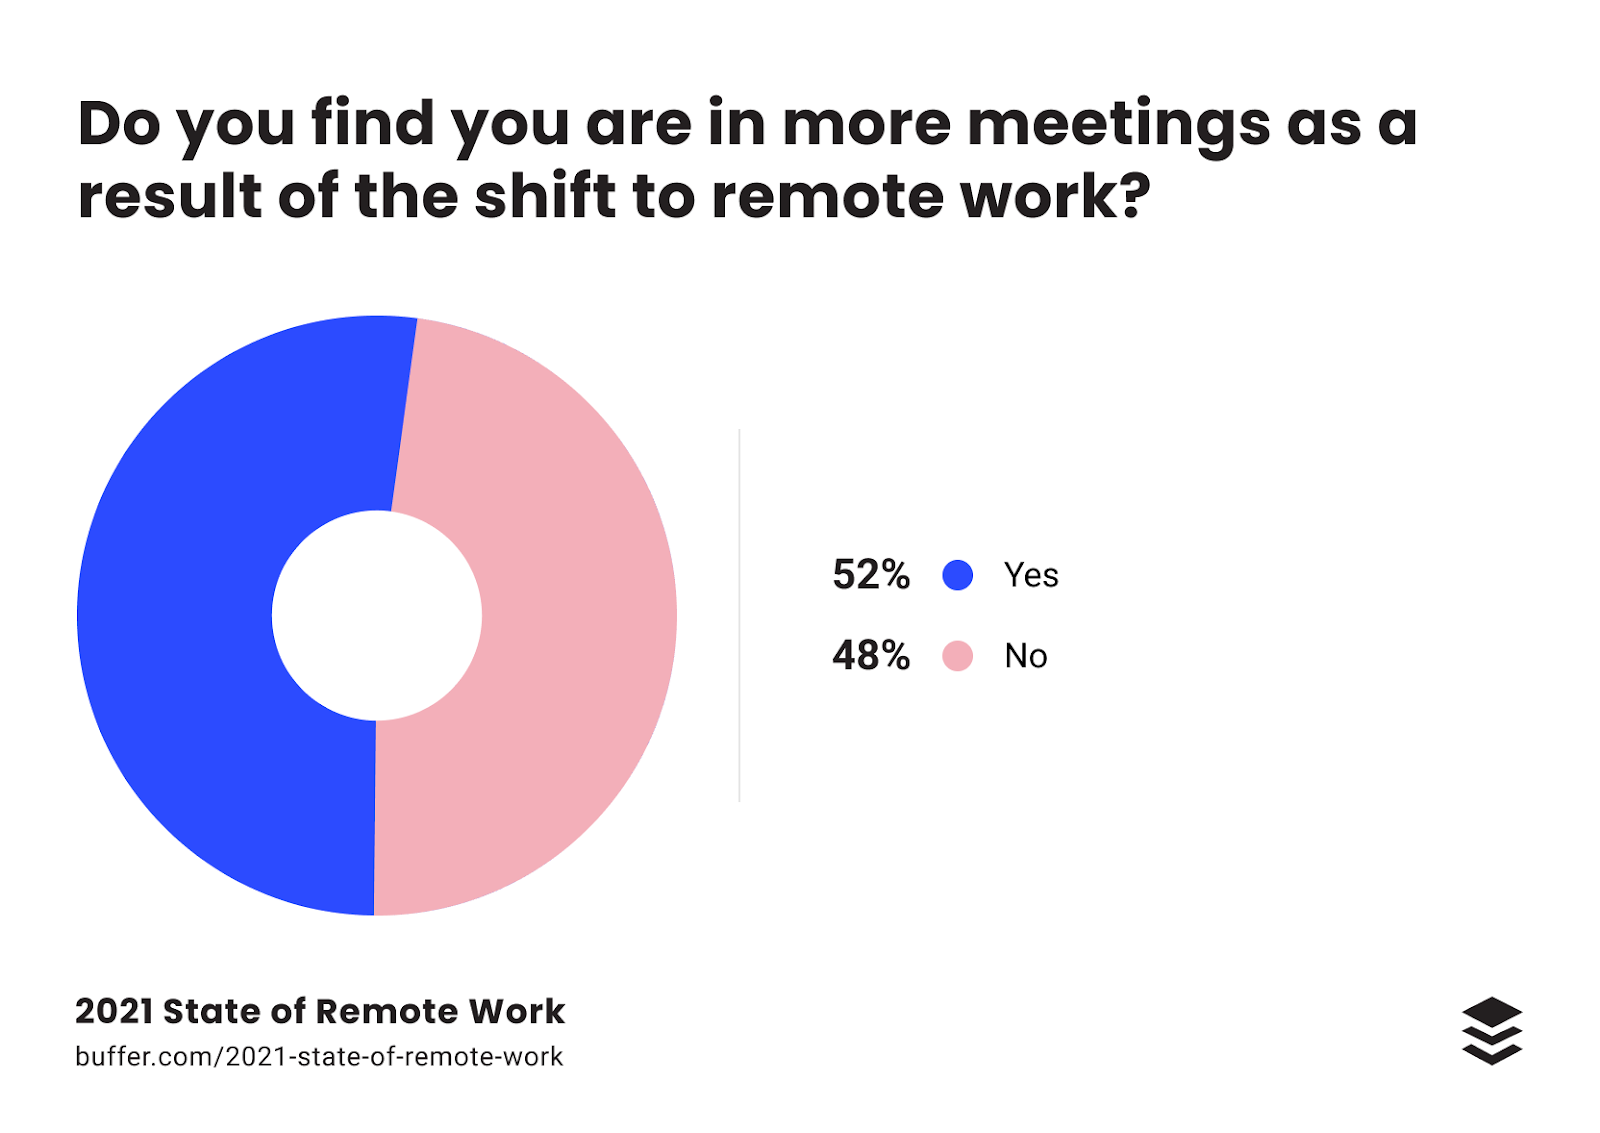 2021 remote work statistics show people are now in more meetings than ever before